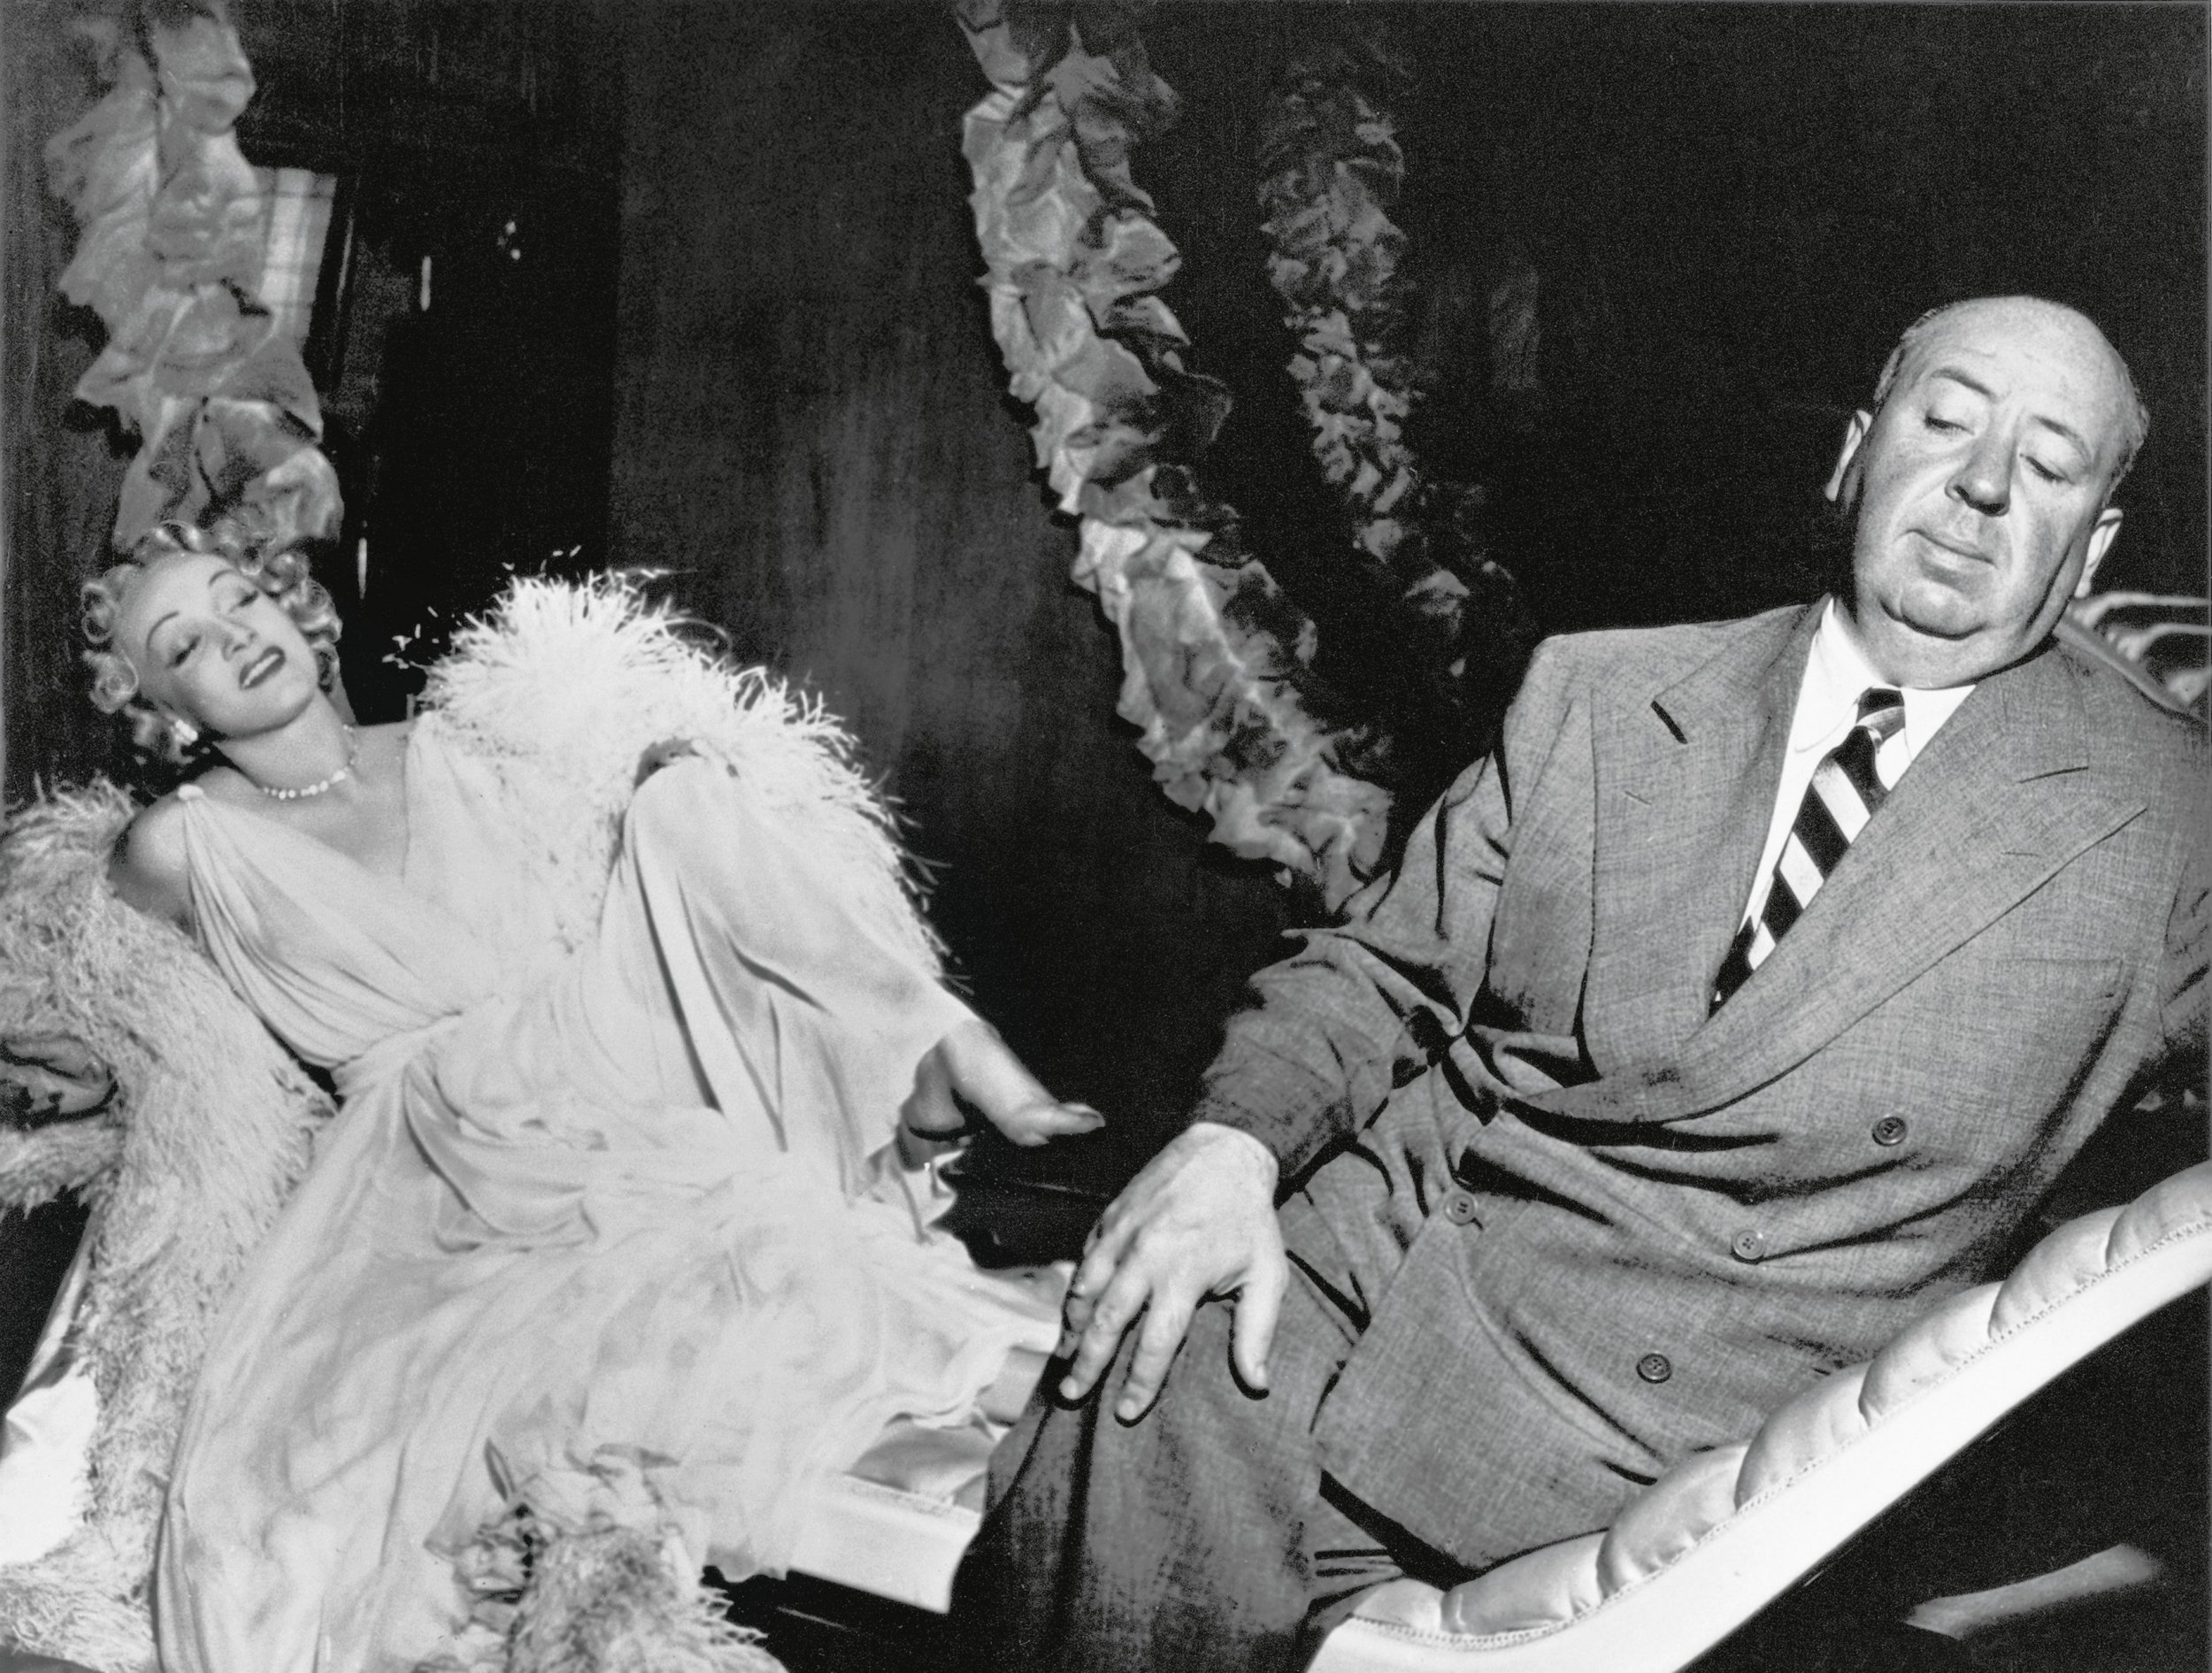 Marlene Dietrich and Alfred Hitchcock in Stage Fright (1950)